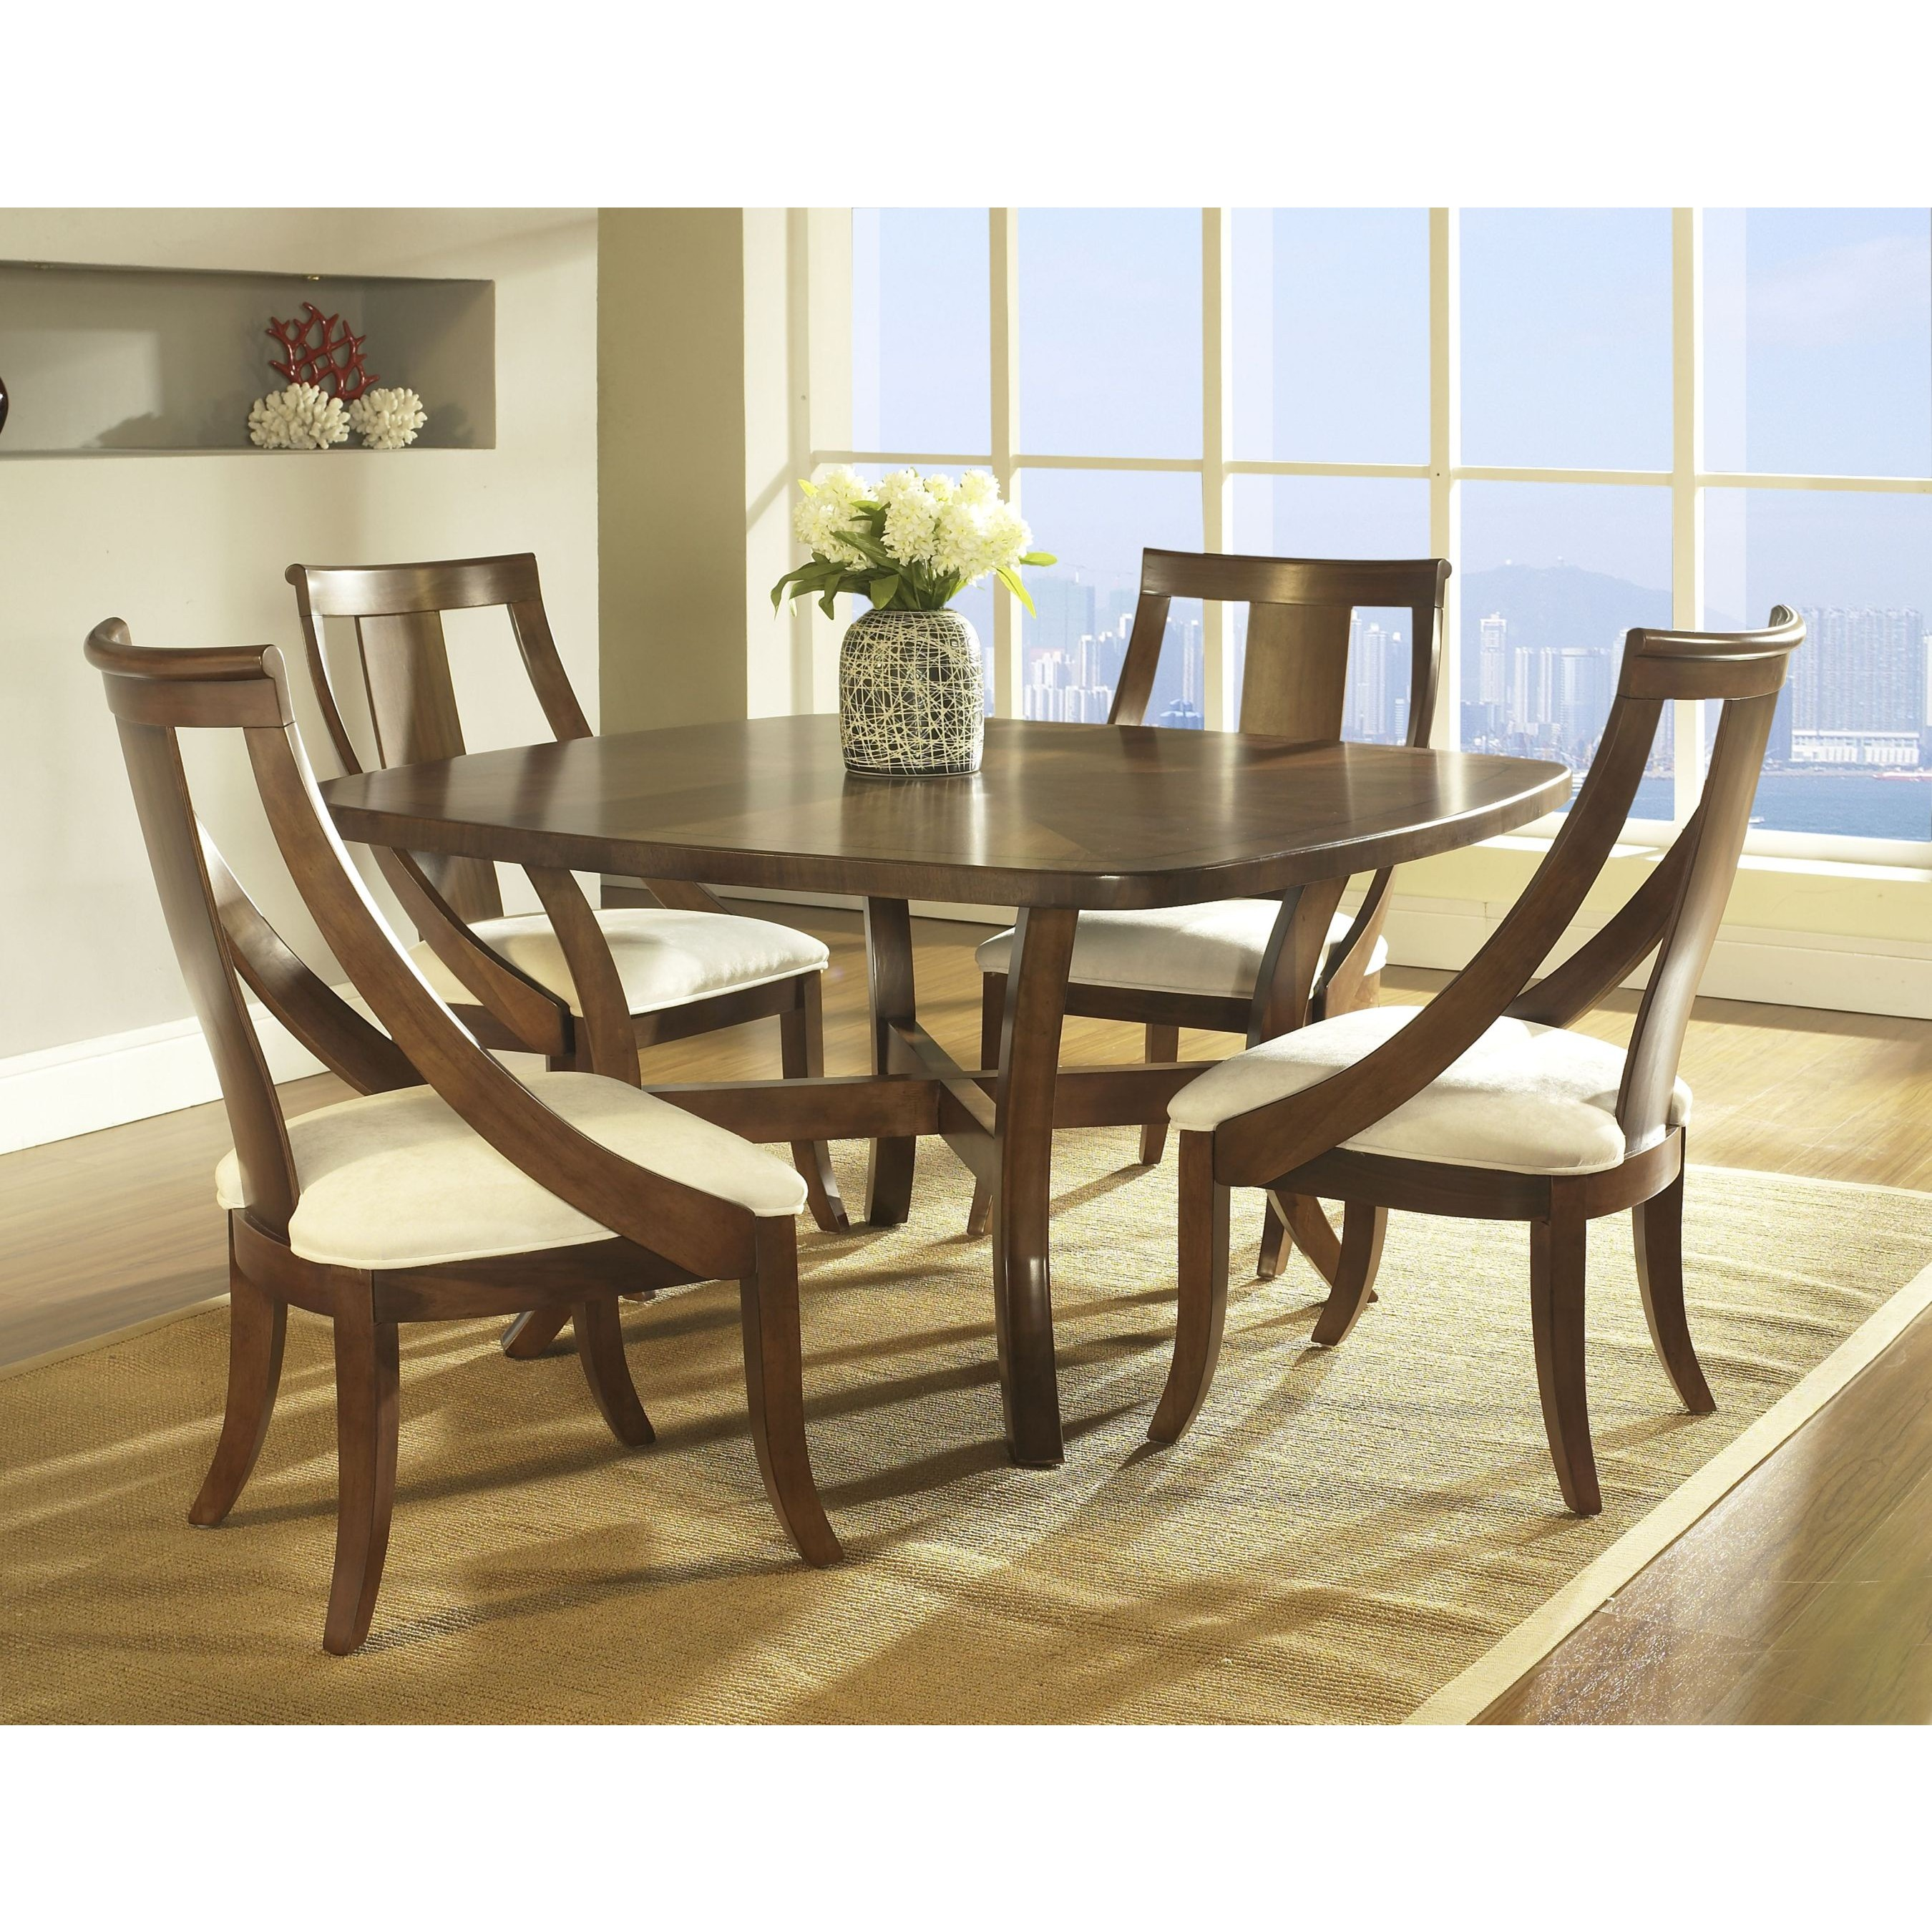 Dining room tables for 4